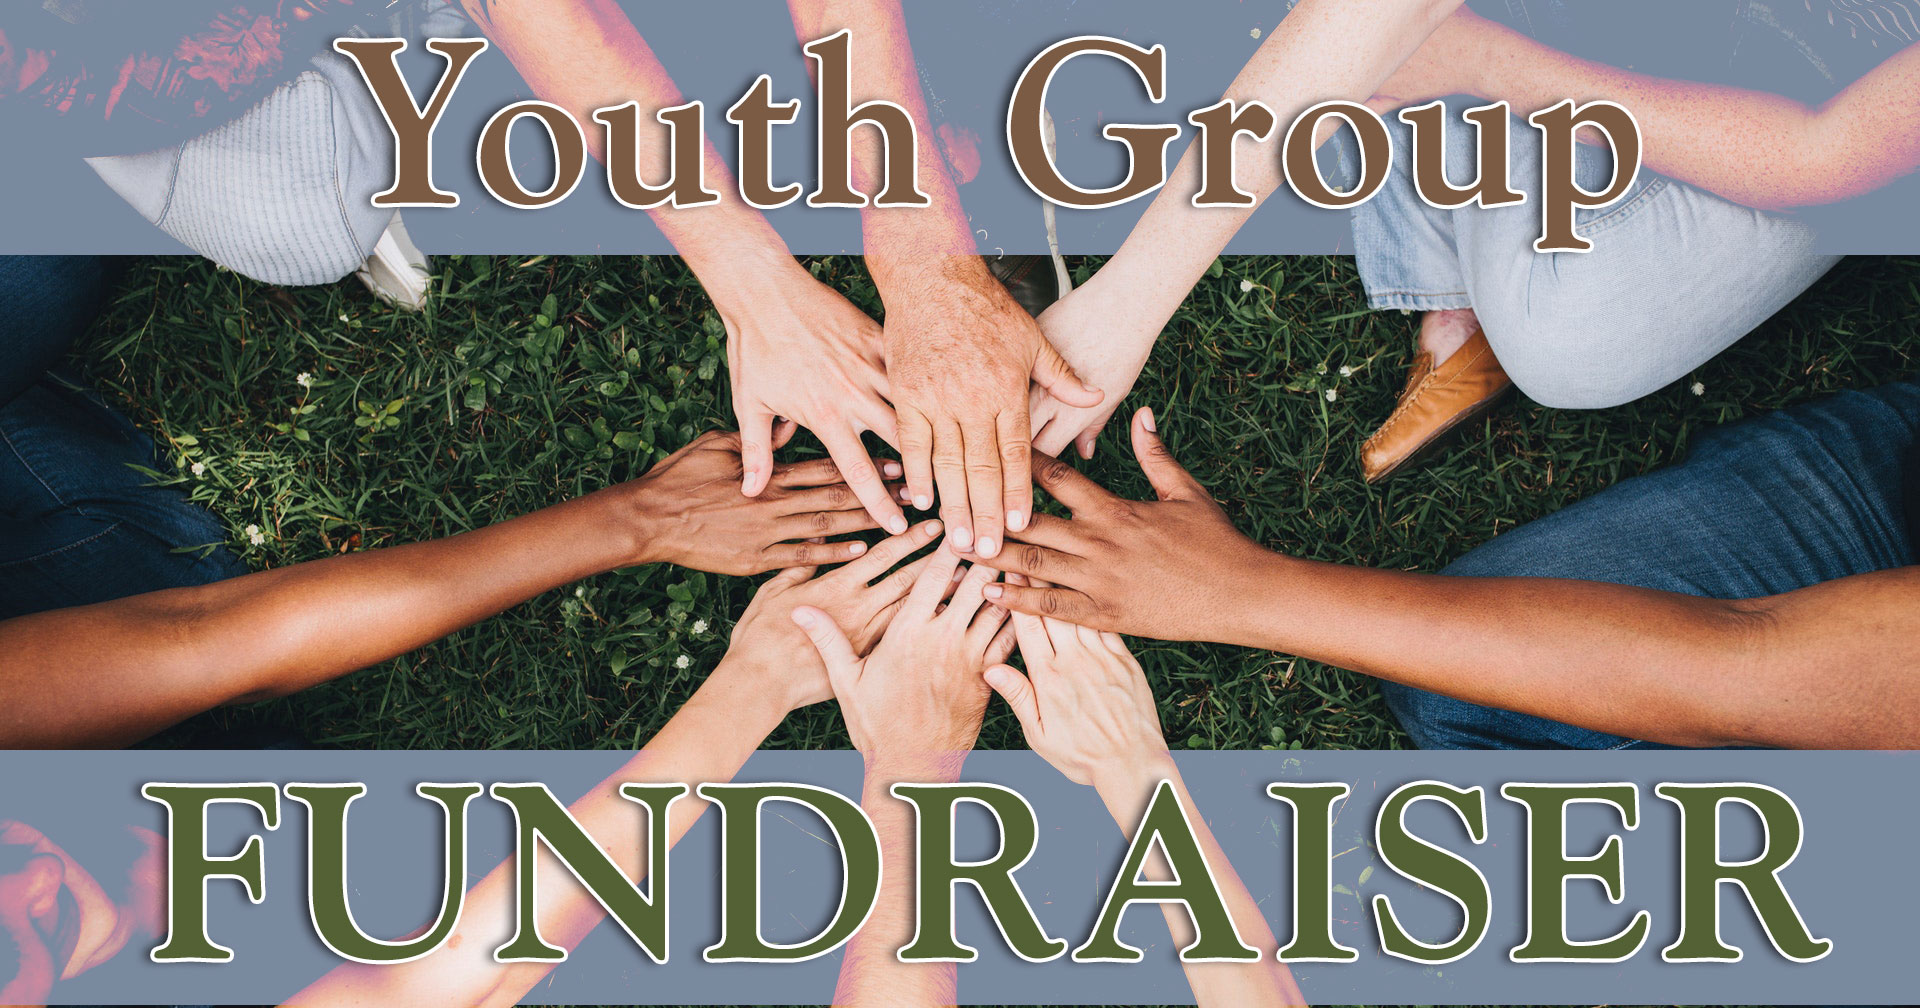 Youth_group_fundraiser_2019.jpg